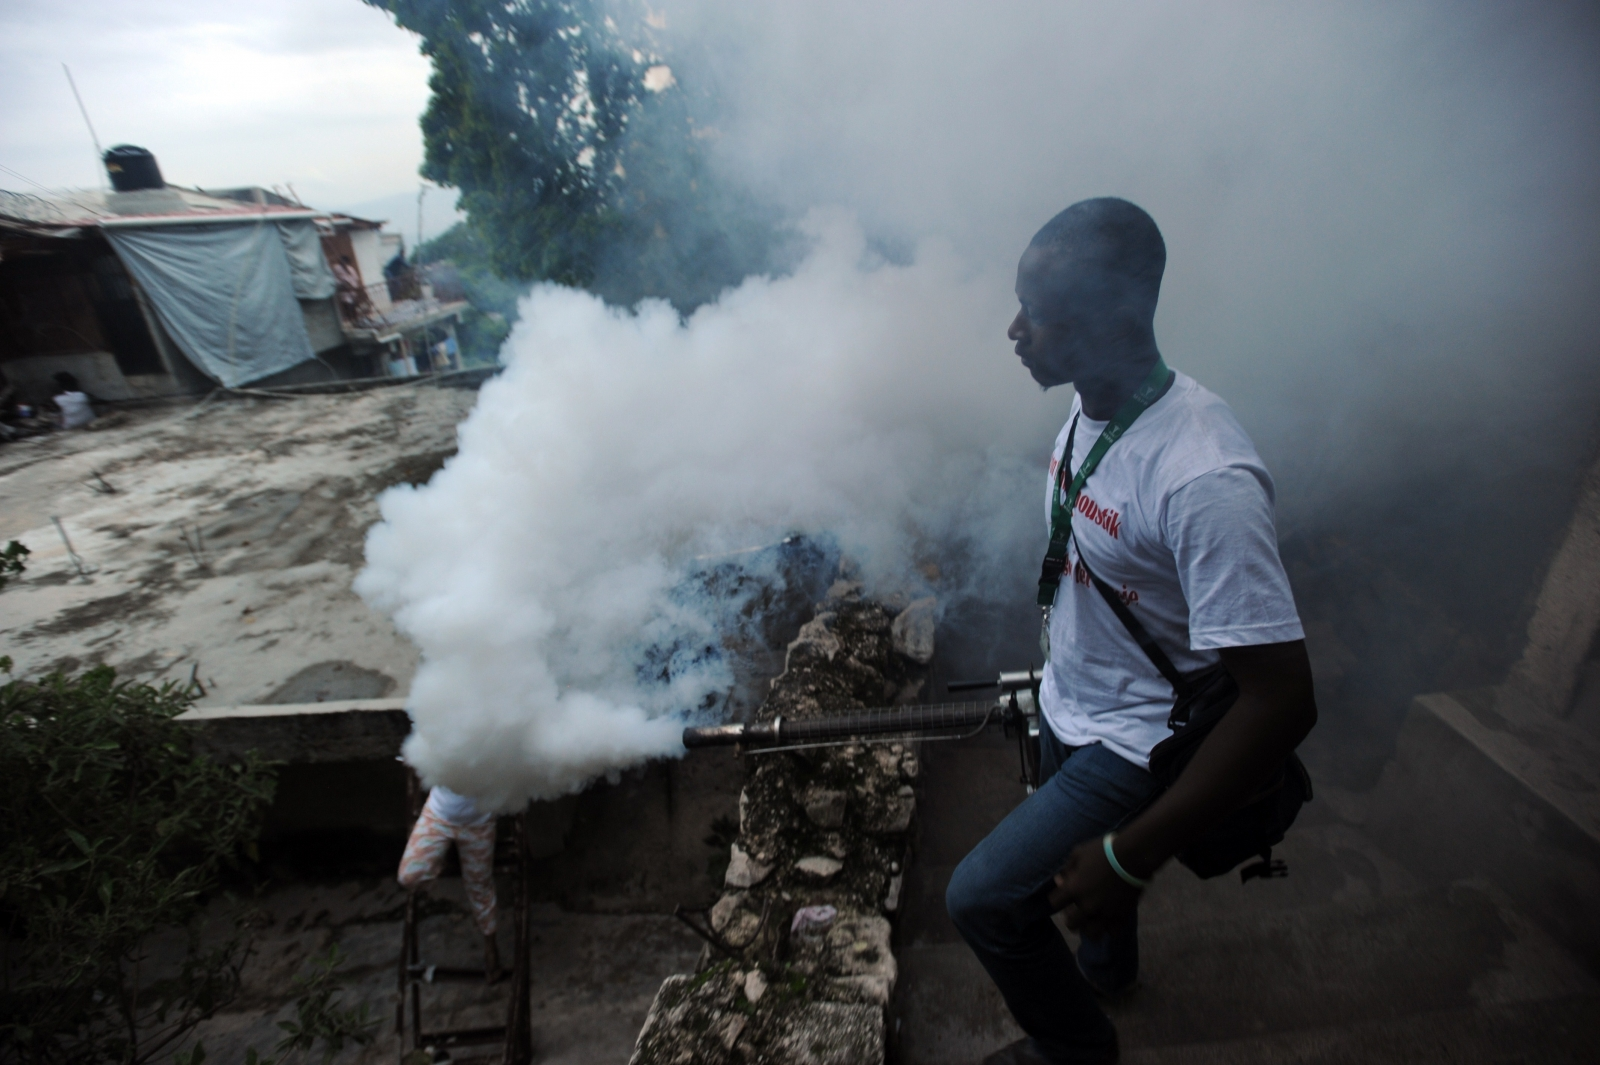 Health worker, Port-au-Prince, Haiti, fumigates for mosquitos